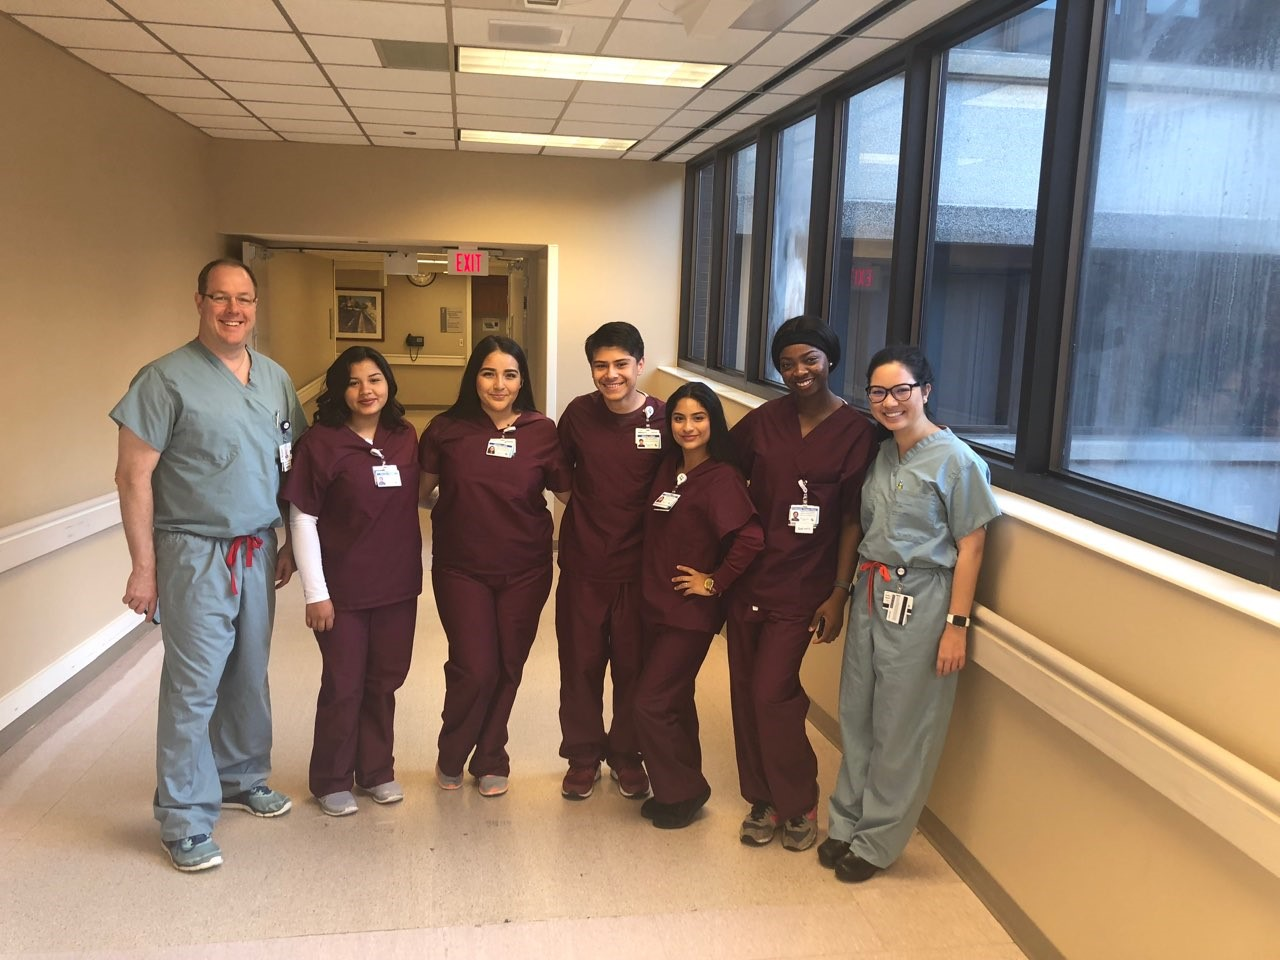 Summer Nursing Internship that is made possible thanks to our partnership with  Houston Methodist Hospital and  CHI St. Luke's Health Hospital.